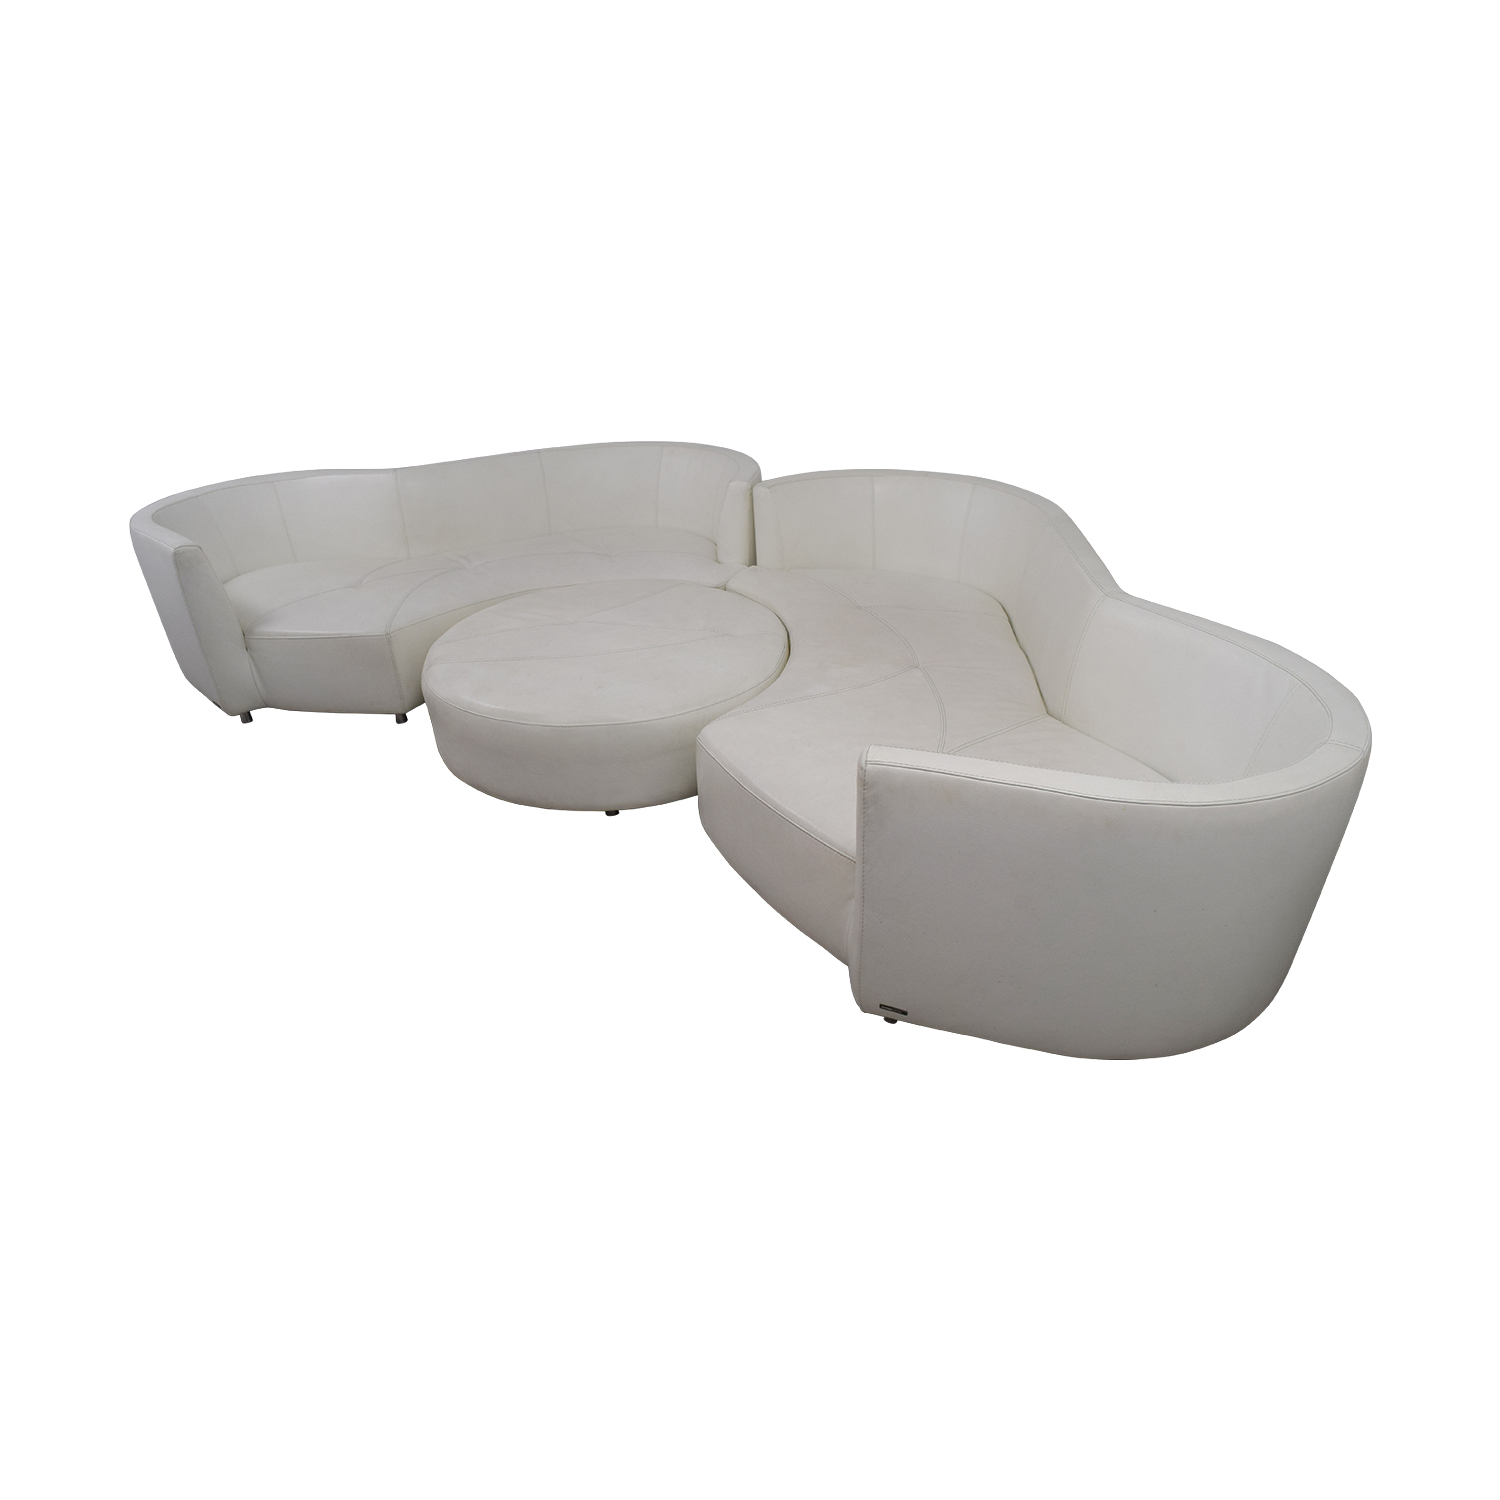 Groovy 73 Off Roche Bobois Roche Bobois White Digital Curved Three Cushion Sofas With Ottoman Sofas Caraccident5 Cool Chair Designs And Ideas Caraccident5Info